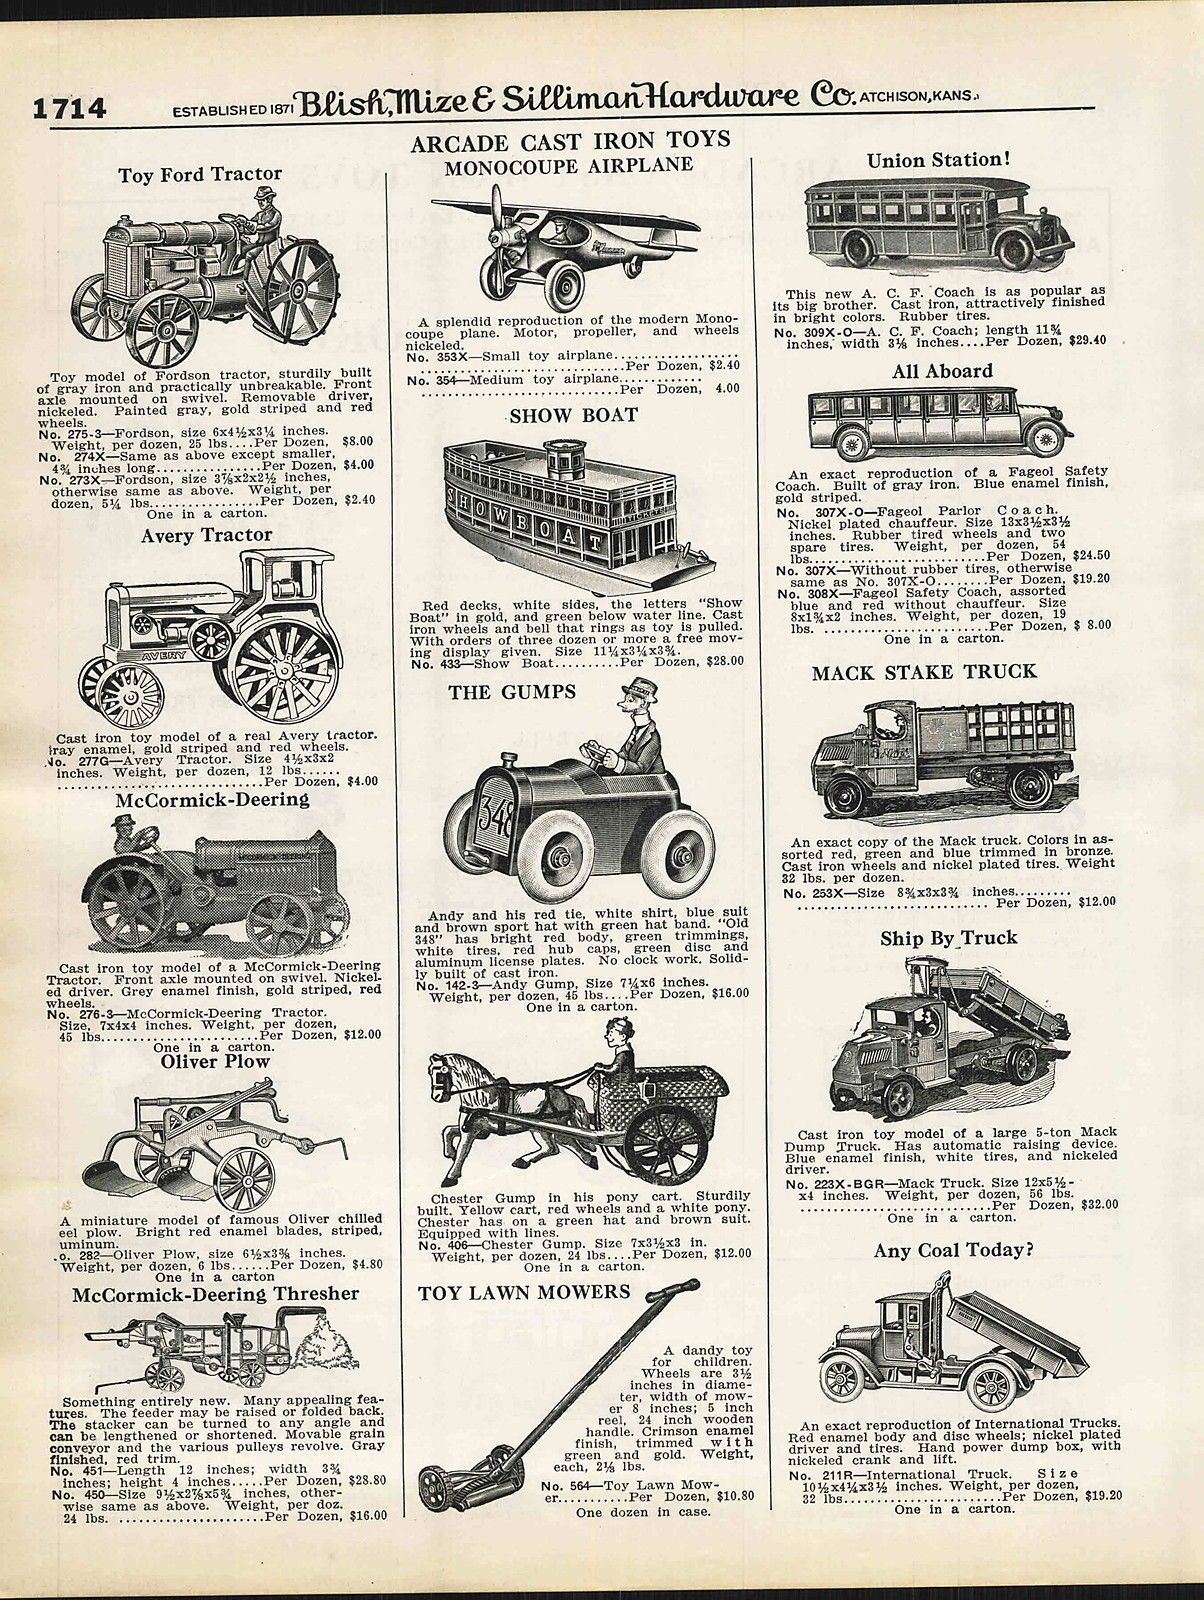 1930 Ad Arcade Cast Iron Toy Trucks Mccormick Deering